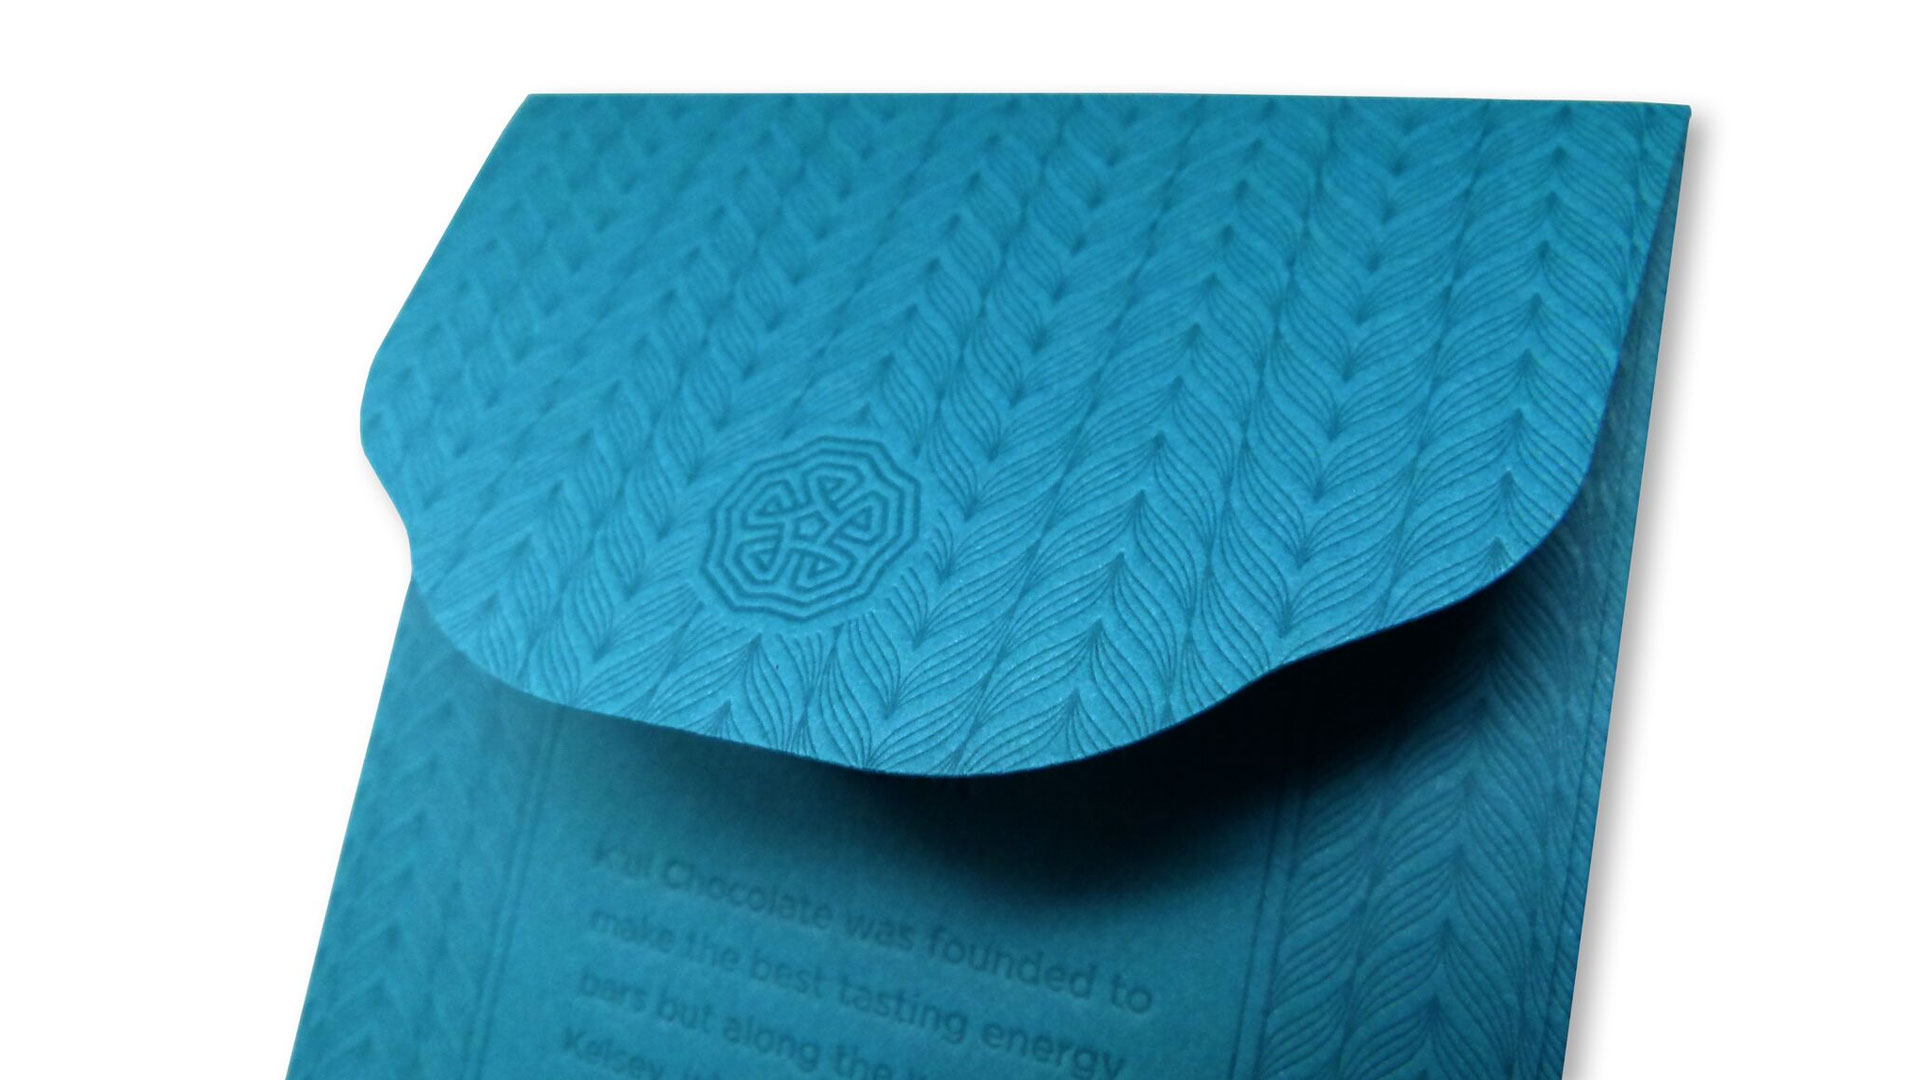 Creative Packaging Design for K'ul Chocolate - PaperSpecs